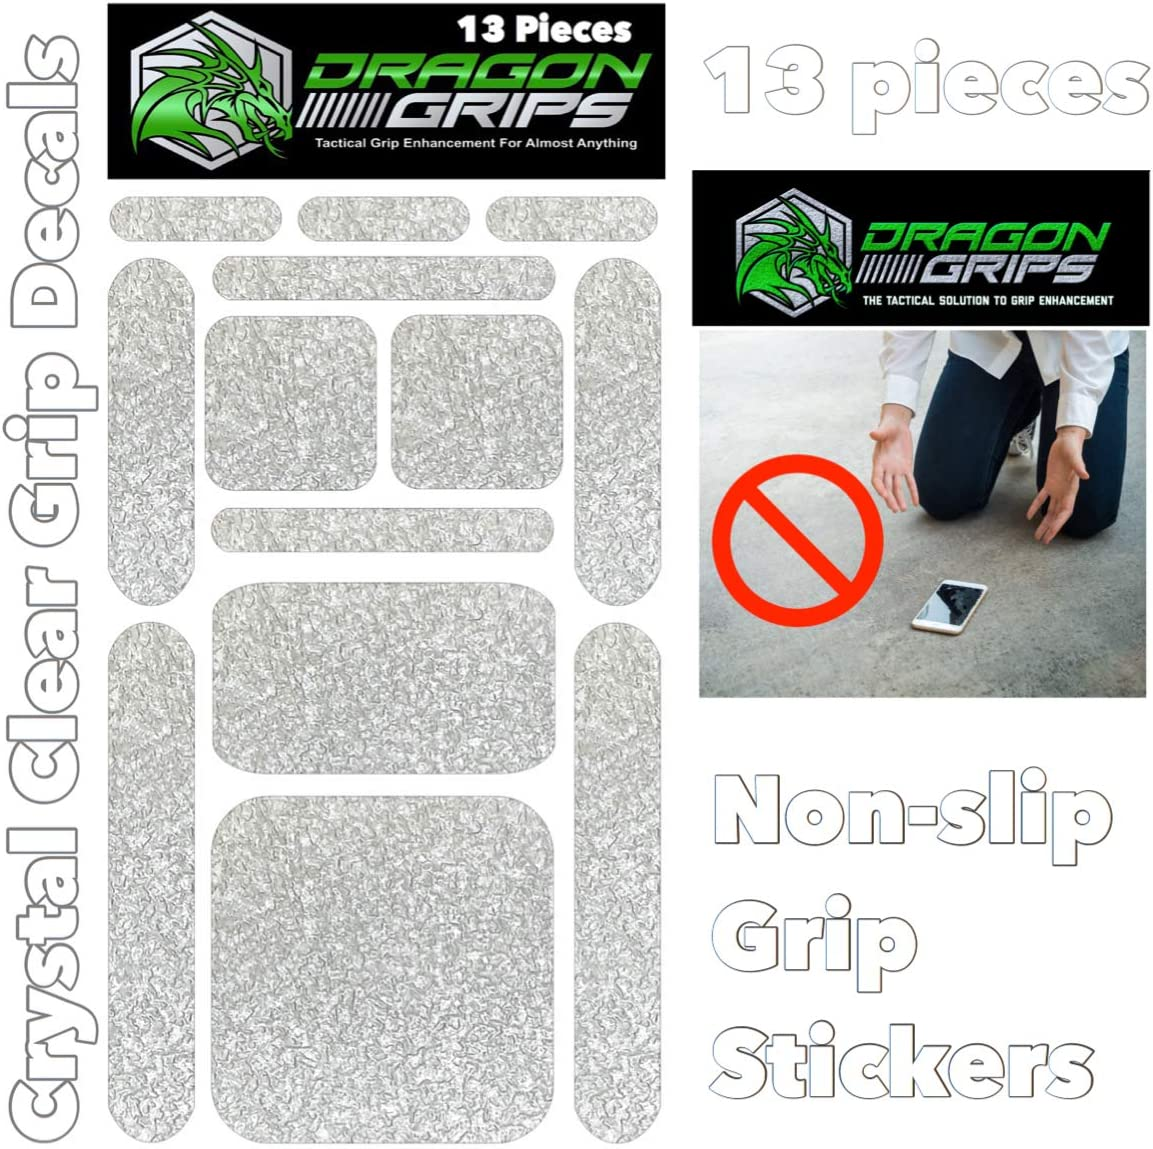 Dragon Grips 13pc Clear Grip Tape Decal Stickers for iPhone Tablet Mouse Computer Textured Silicone Rubber Traction Grip Adhesive Great for Gaming Mouse Controllers and RC Vehicle Controls (Clear)